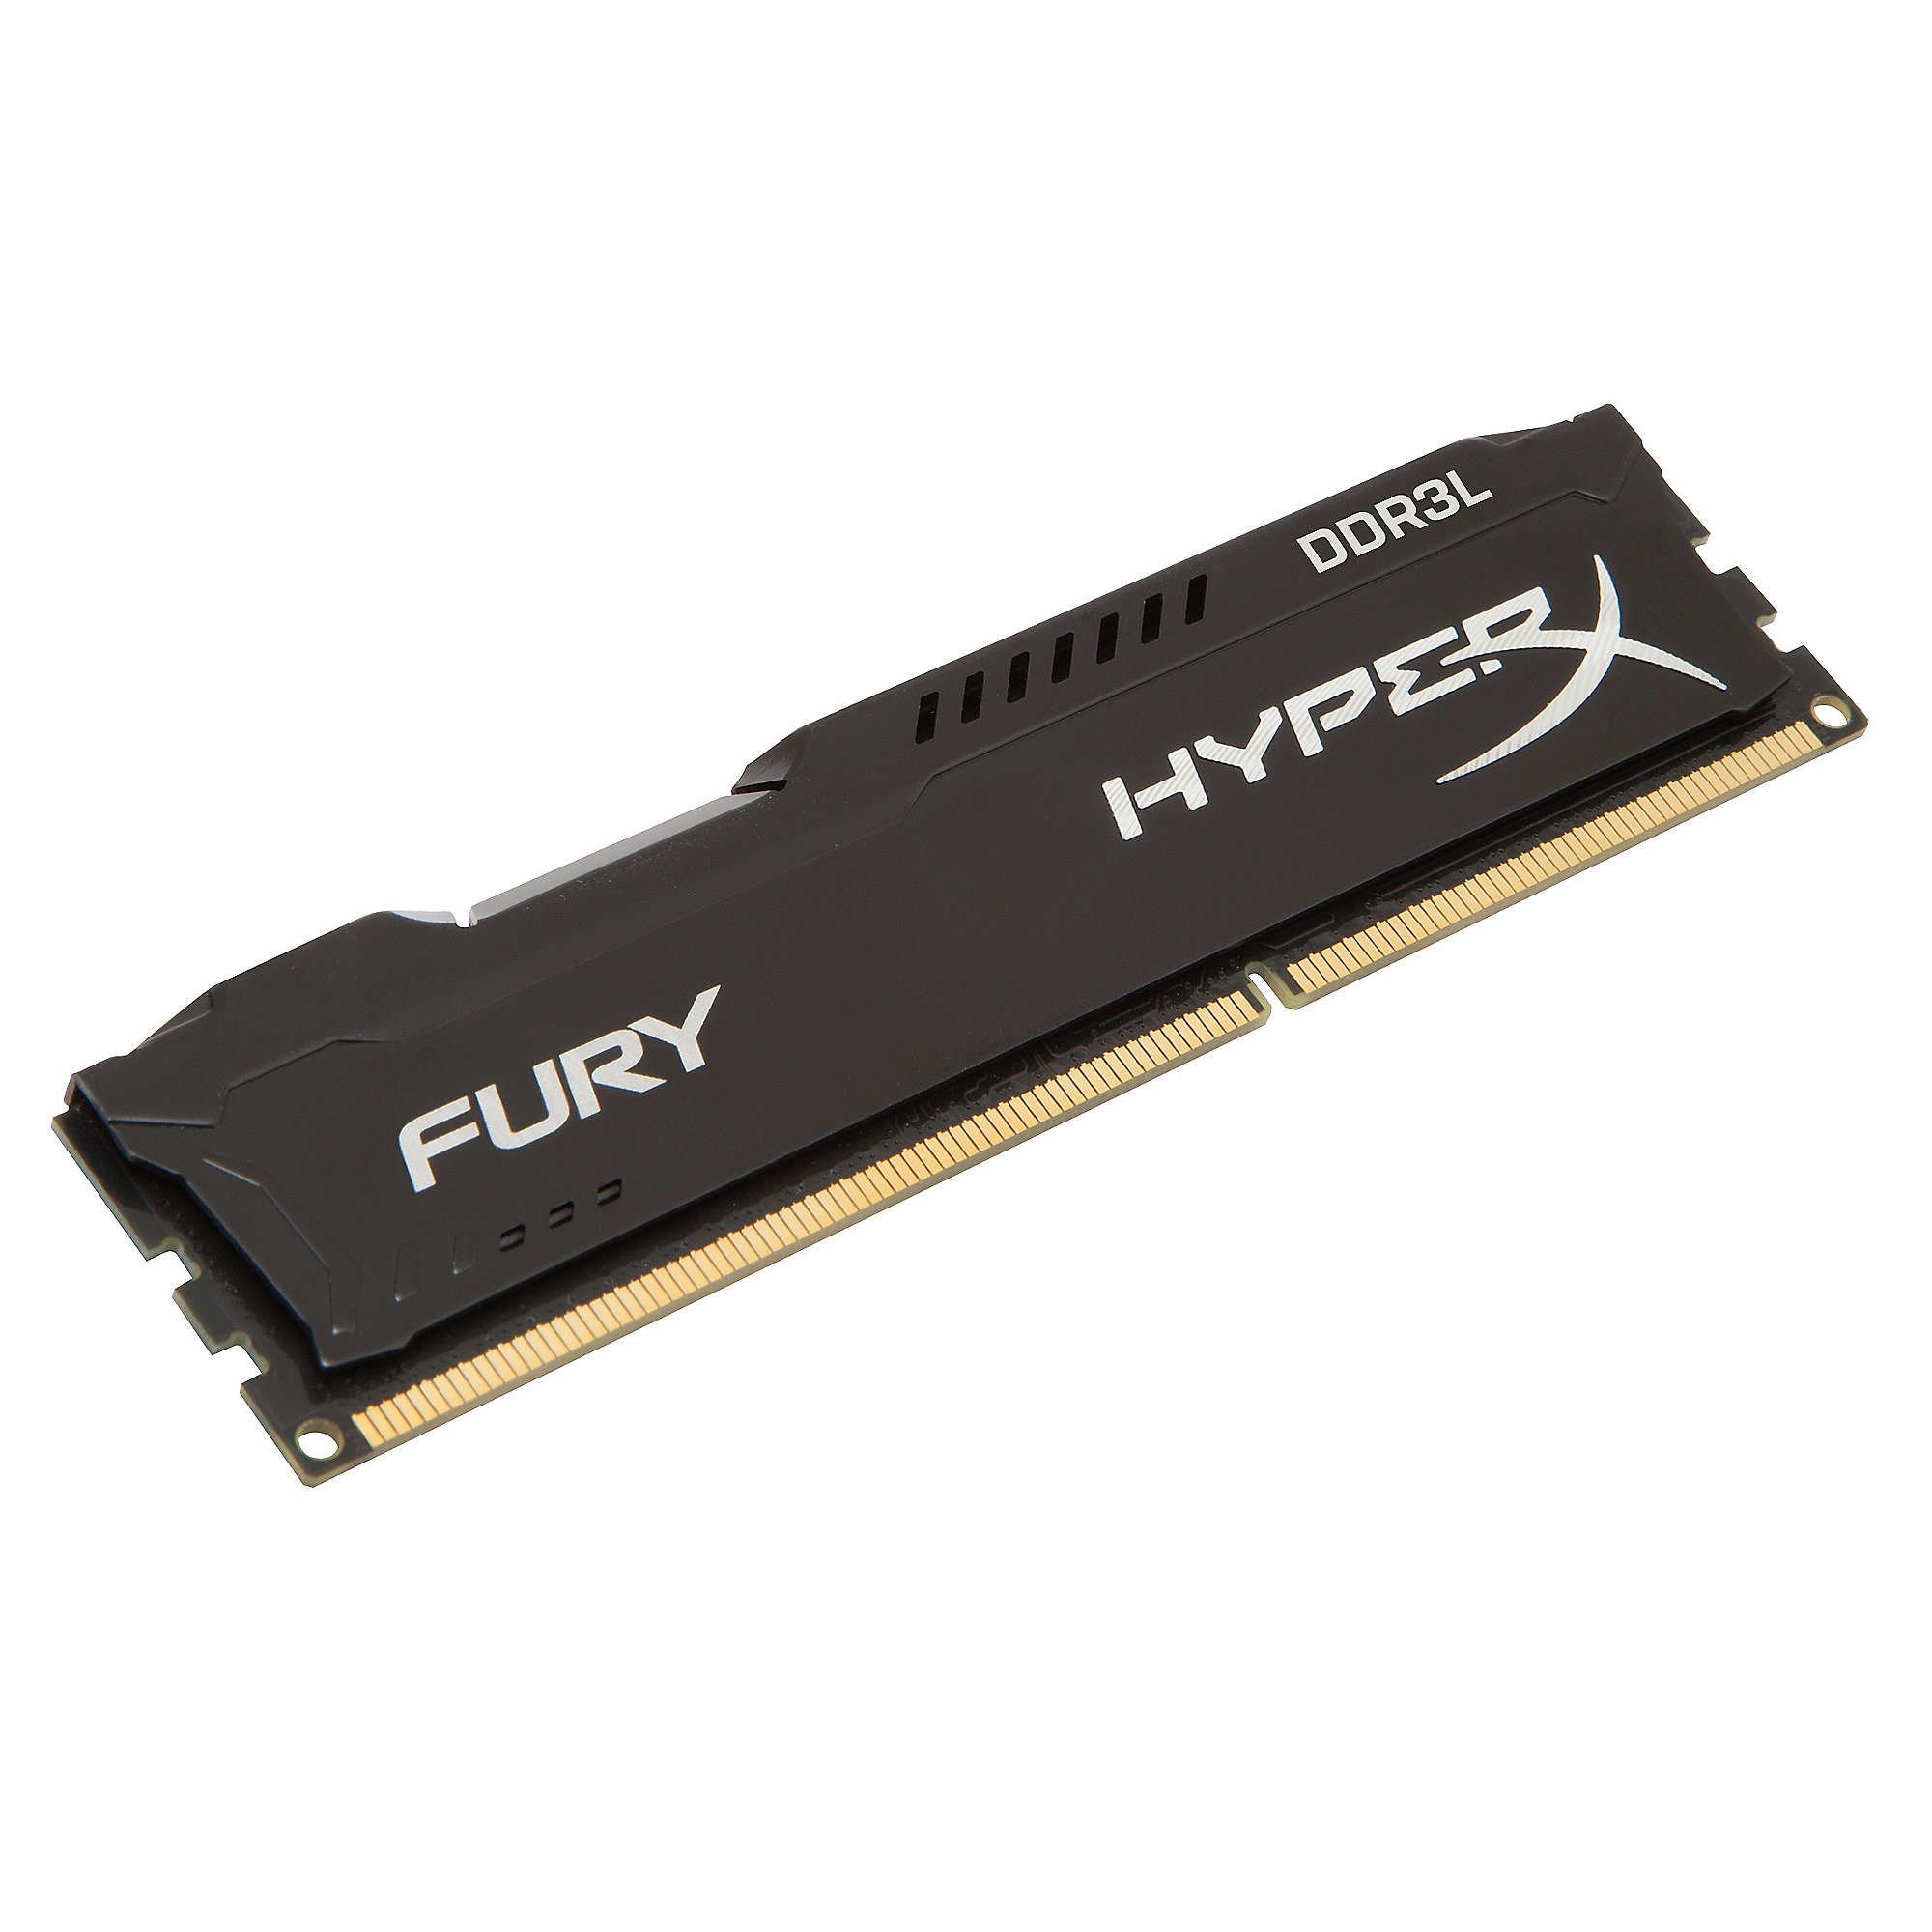 8GB (2x4GB) HyperX Fury schwarz DDR3L-1600 CL10 RAM Kit Low Voltage